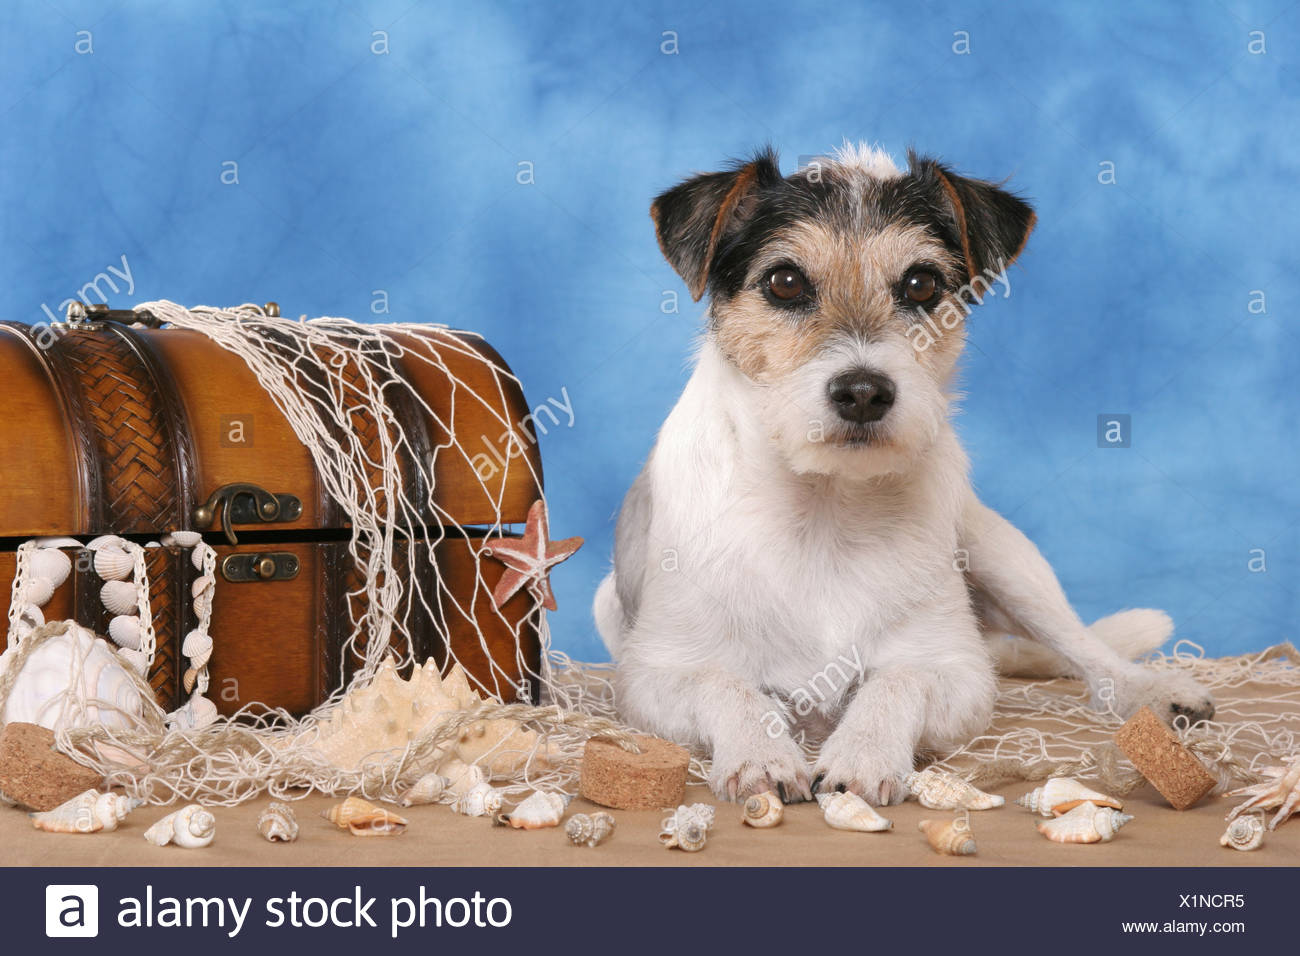 Parson Russell Terrier on beach Stock Photo: 276451593 - Alamy